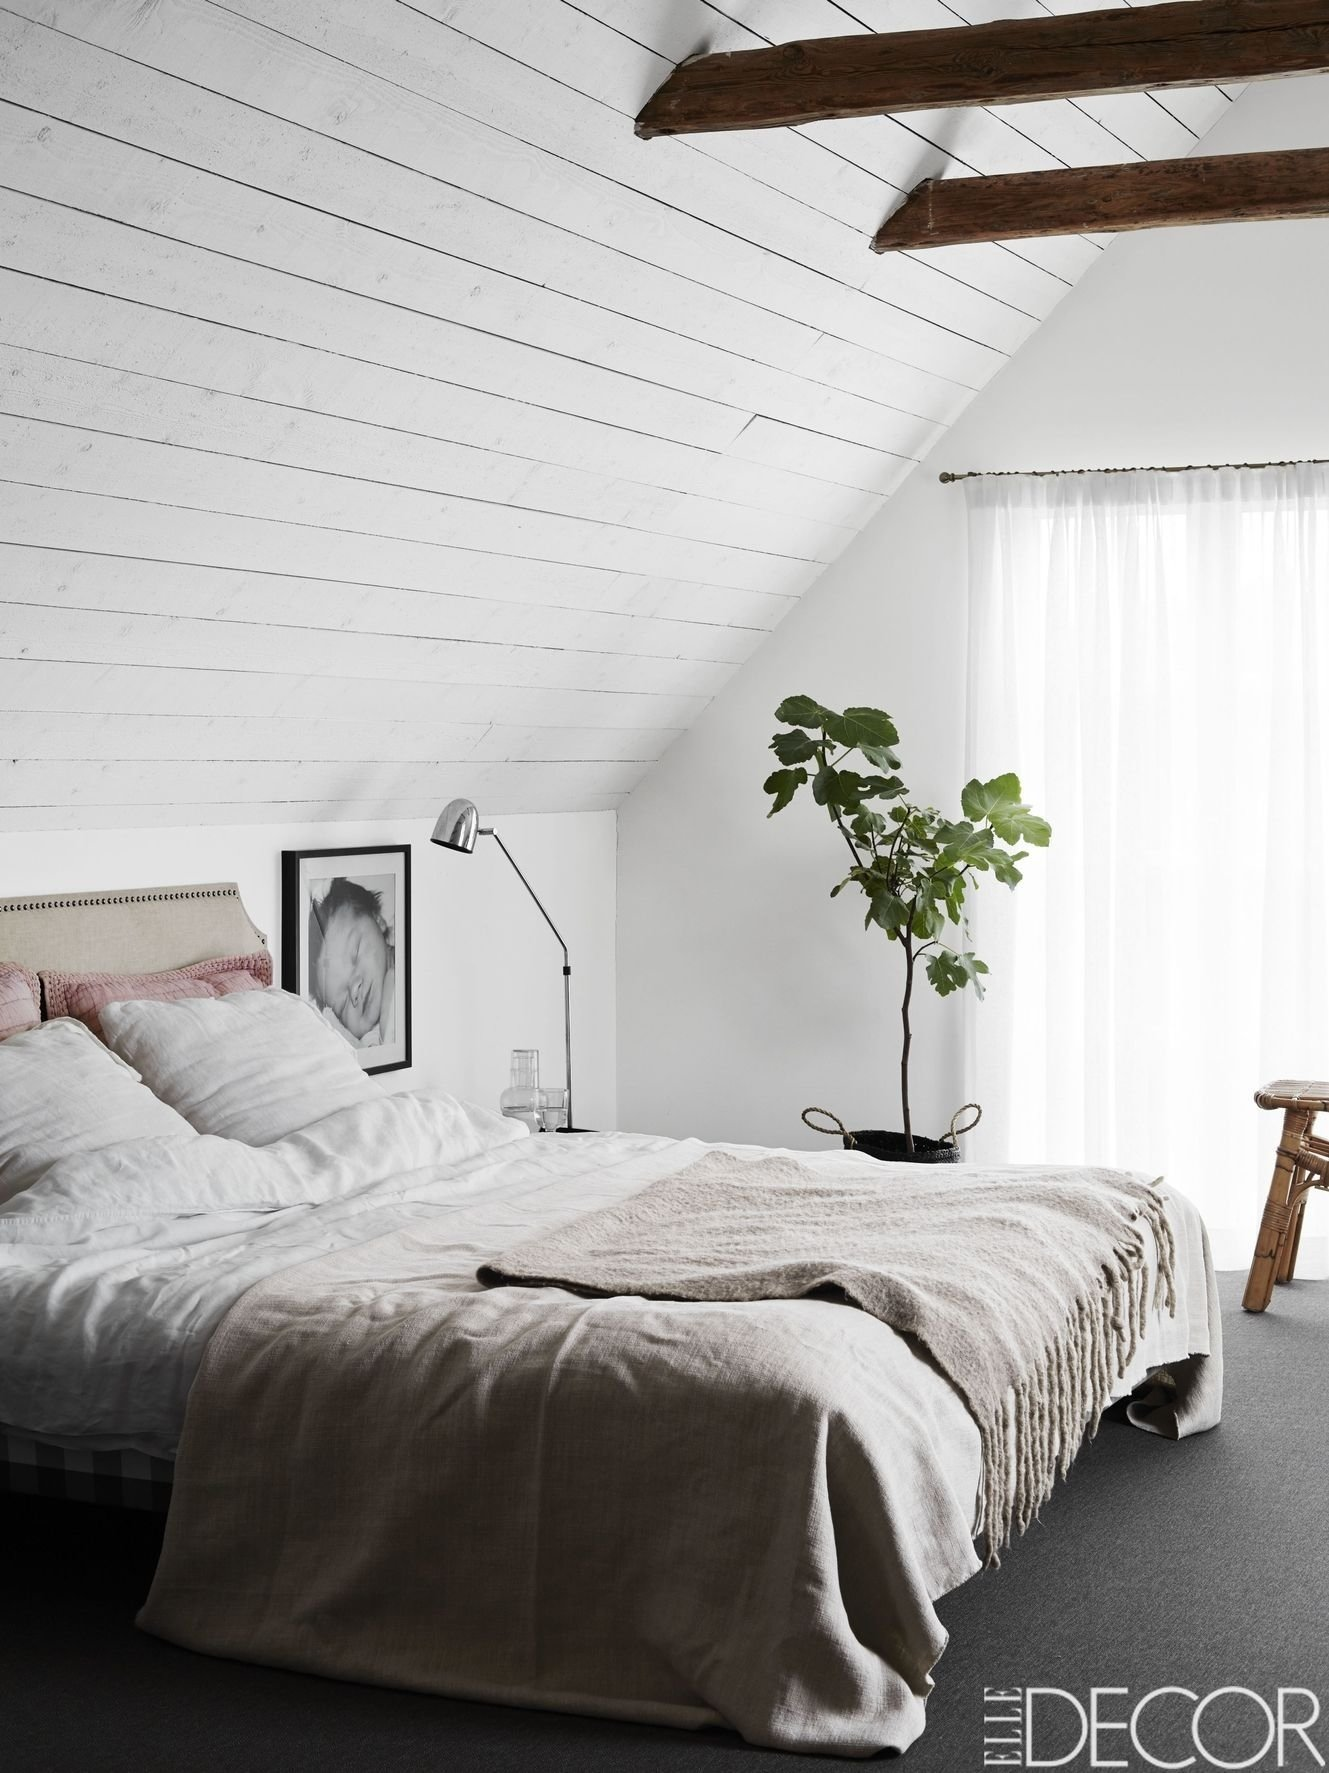 43 small bedroom design ideas - decorating tips for small bedrooms